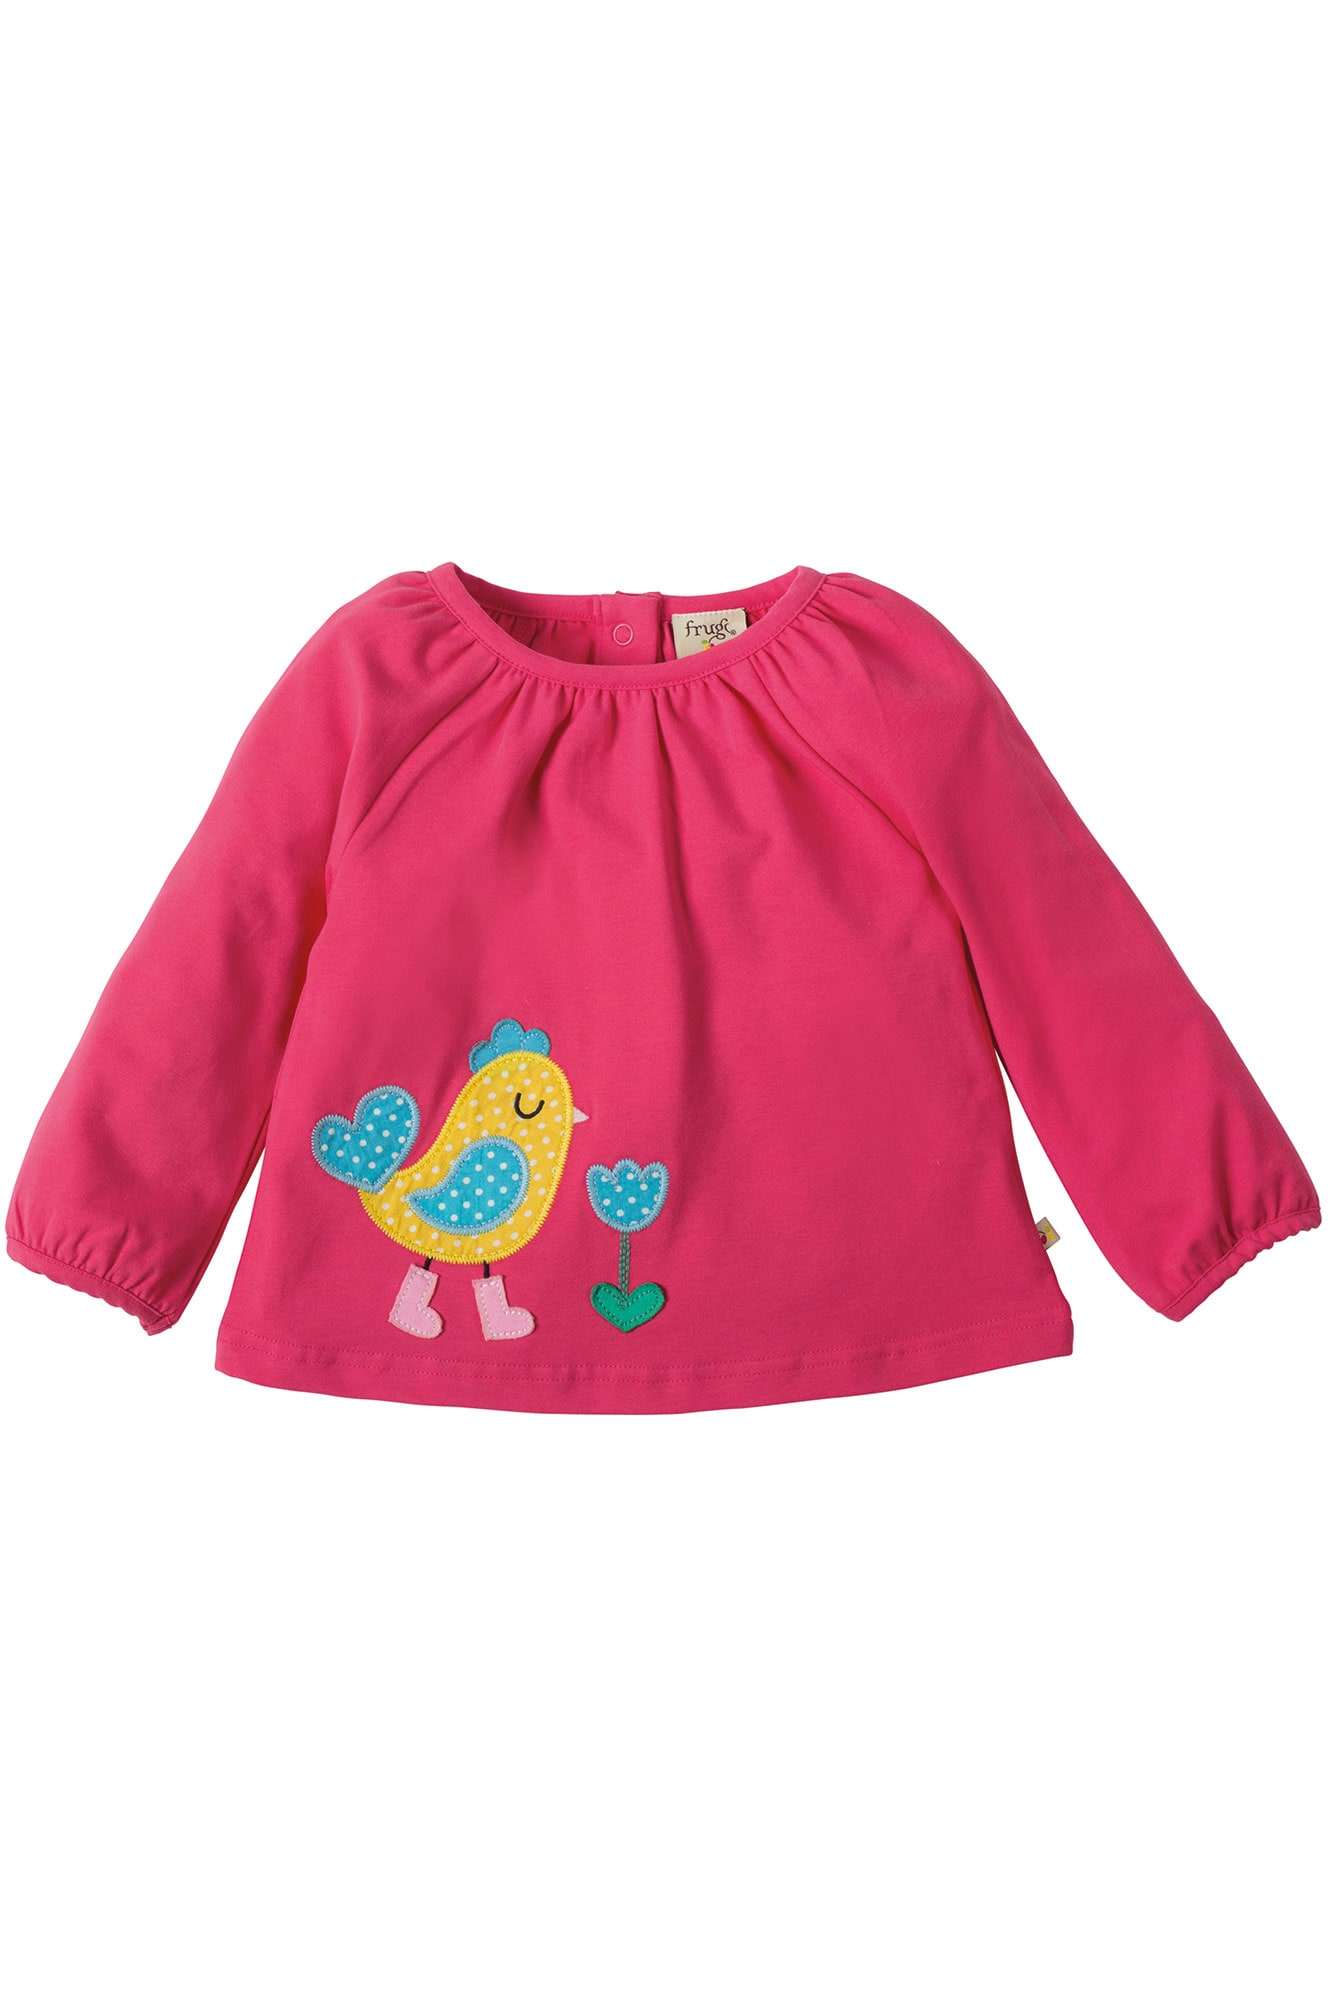 Stockists of Abigail Applique Top